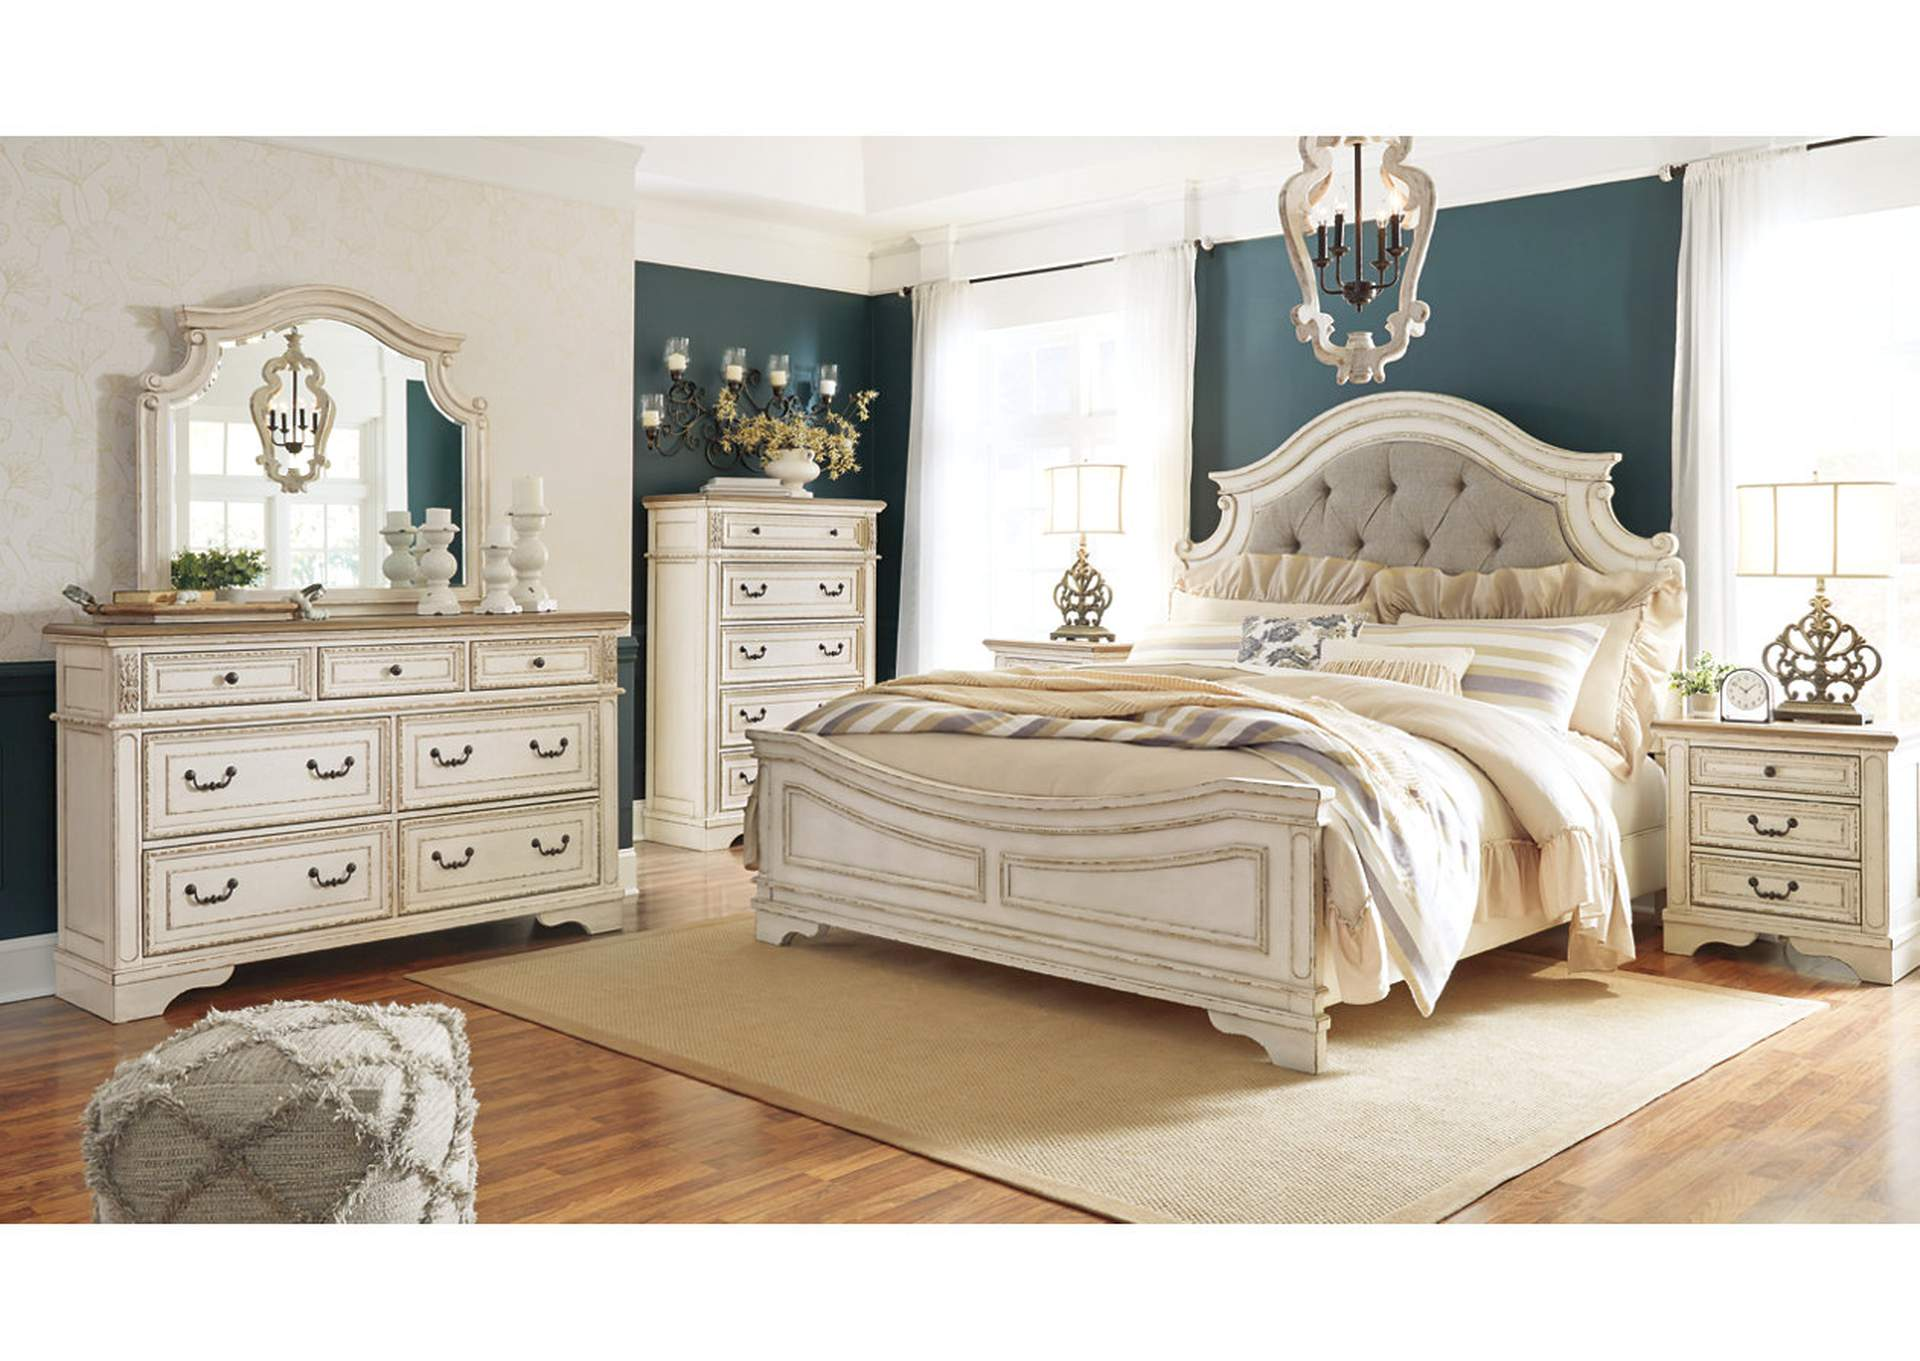 Realyn Chipped White California King Panel Bed,Signature Design By Ashley